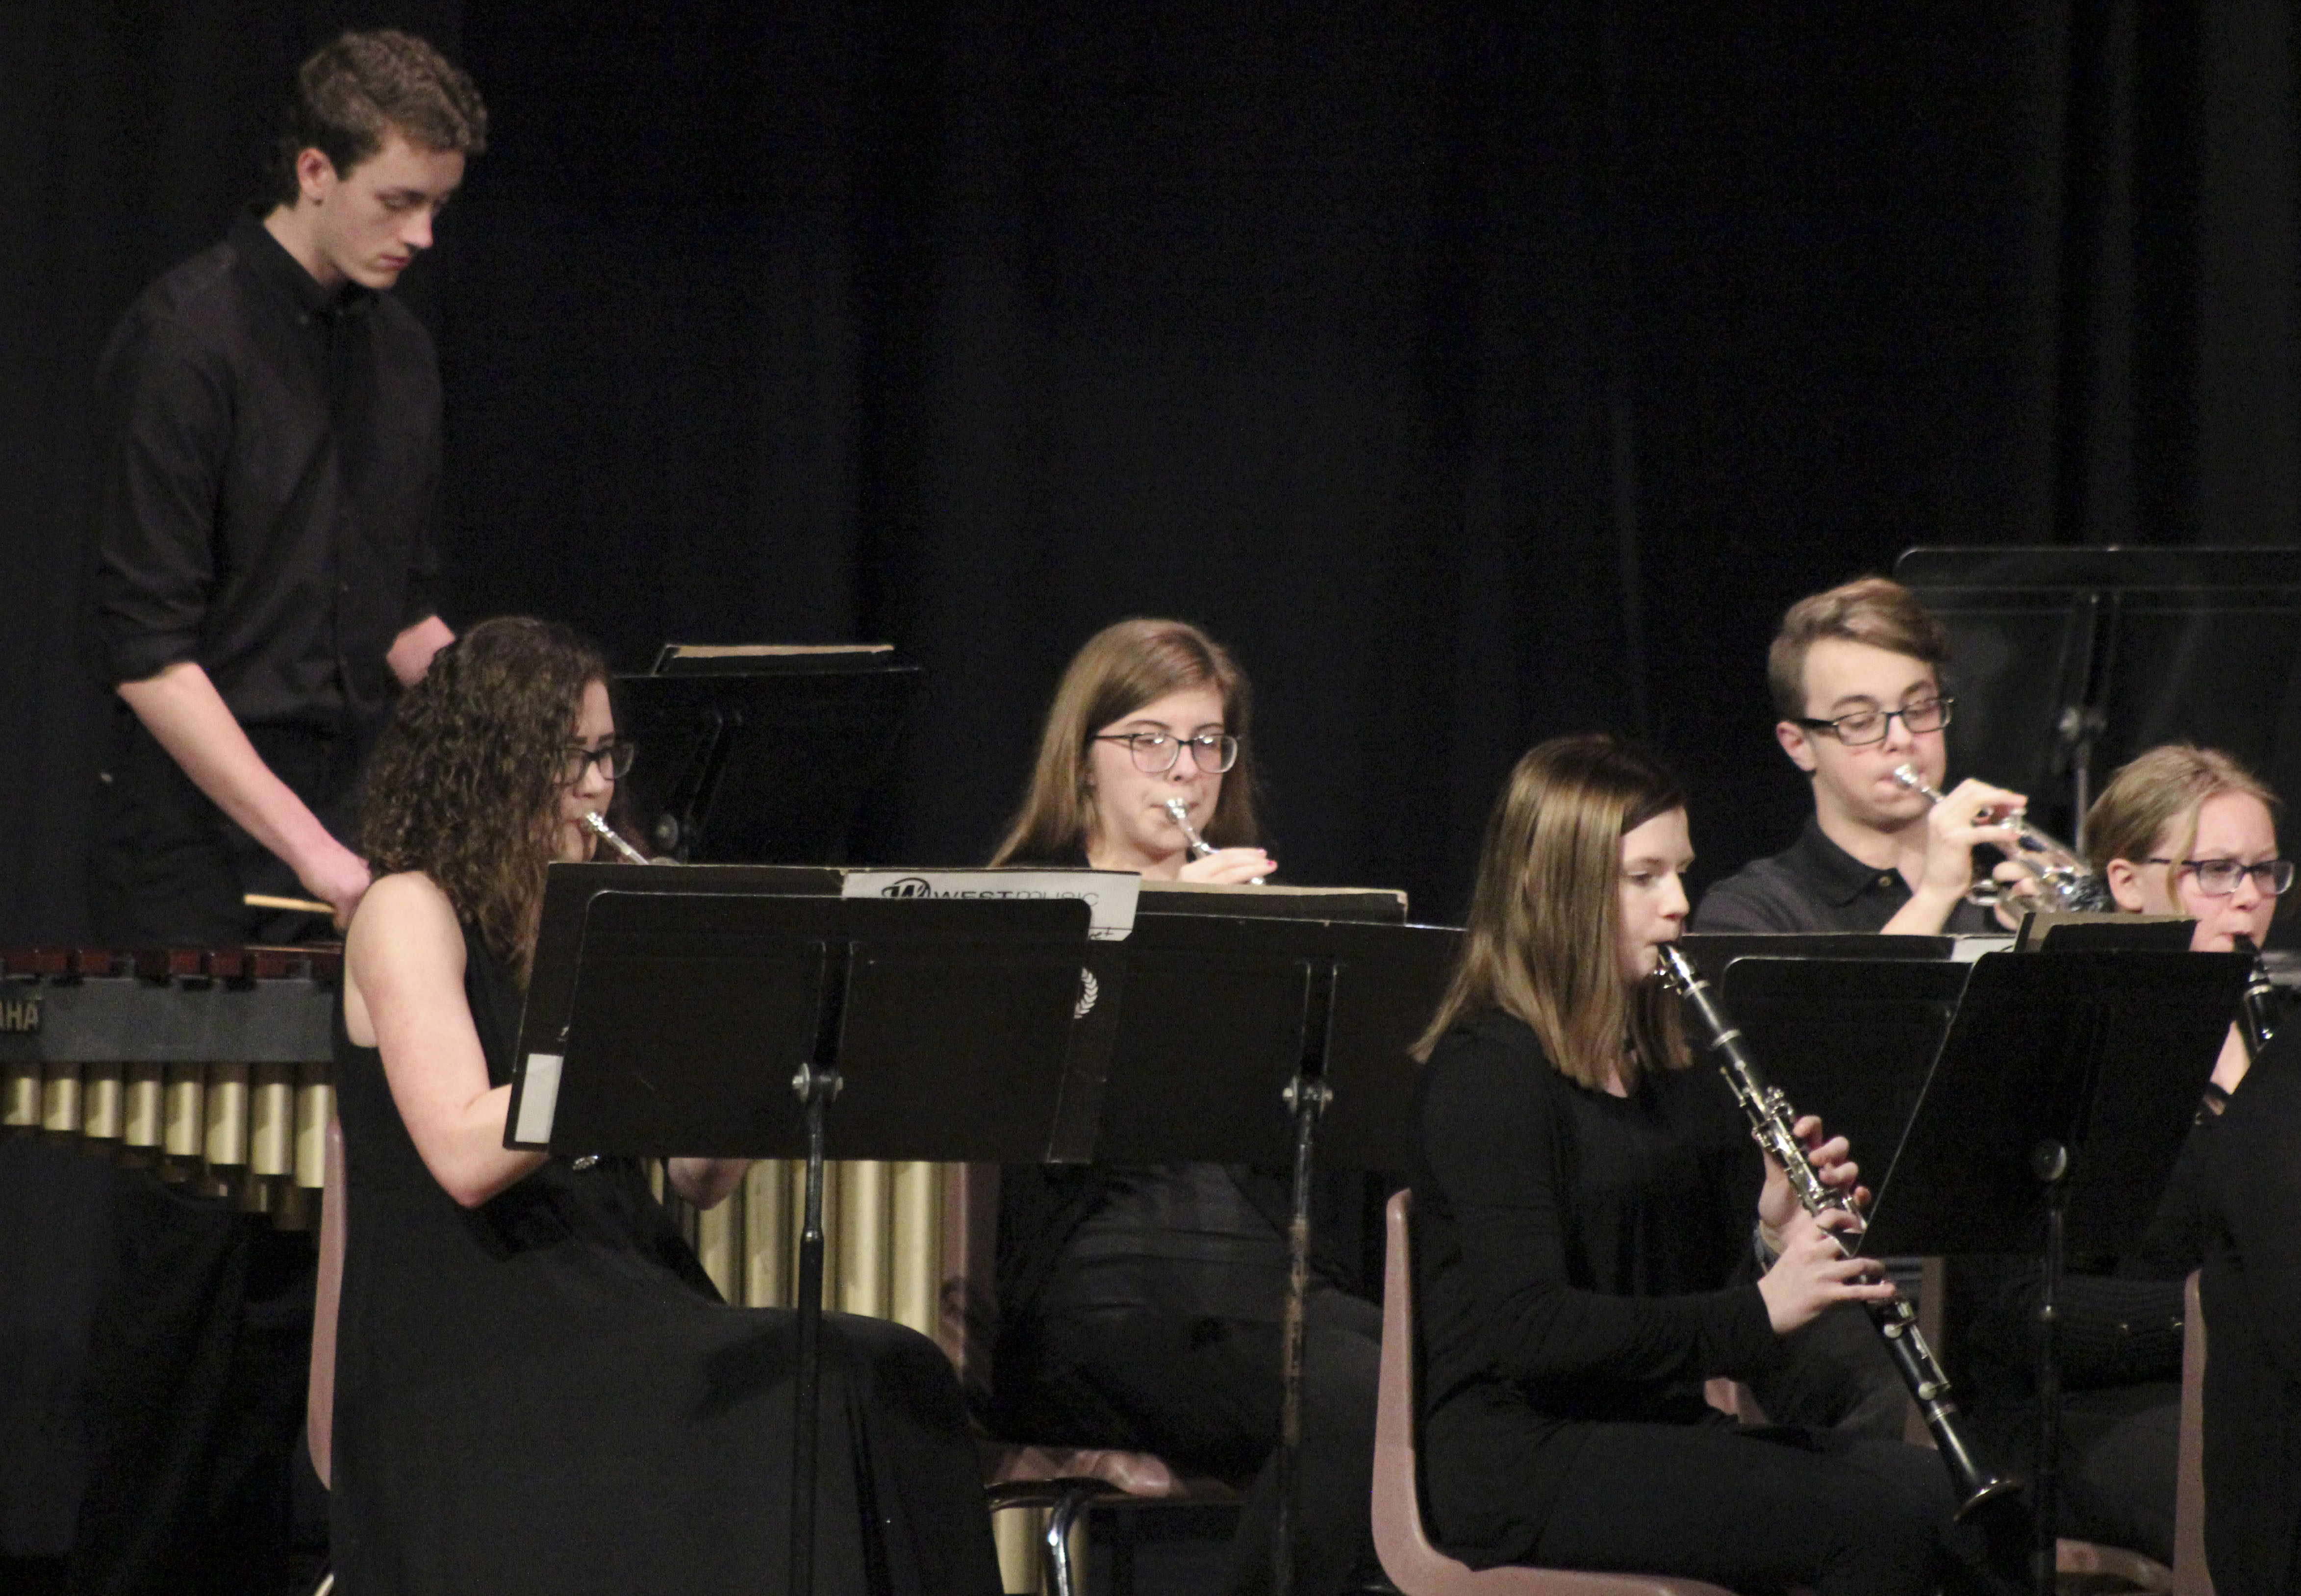 The spring concert of the Monticello High School Symphonic Band was held March 11 in the MHS Auditorium. Among the performers, standing: Daltyn Kramer. Seated from left: Mikayla Coffey, Evee Krouse, Allie Riches, Noah Arduser and Trista DeShaw. (Photos by Pete Temple)